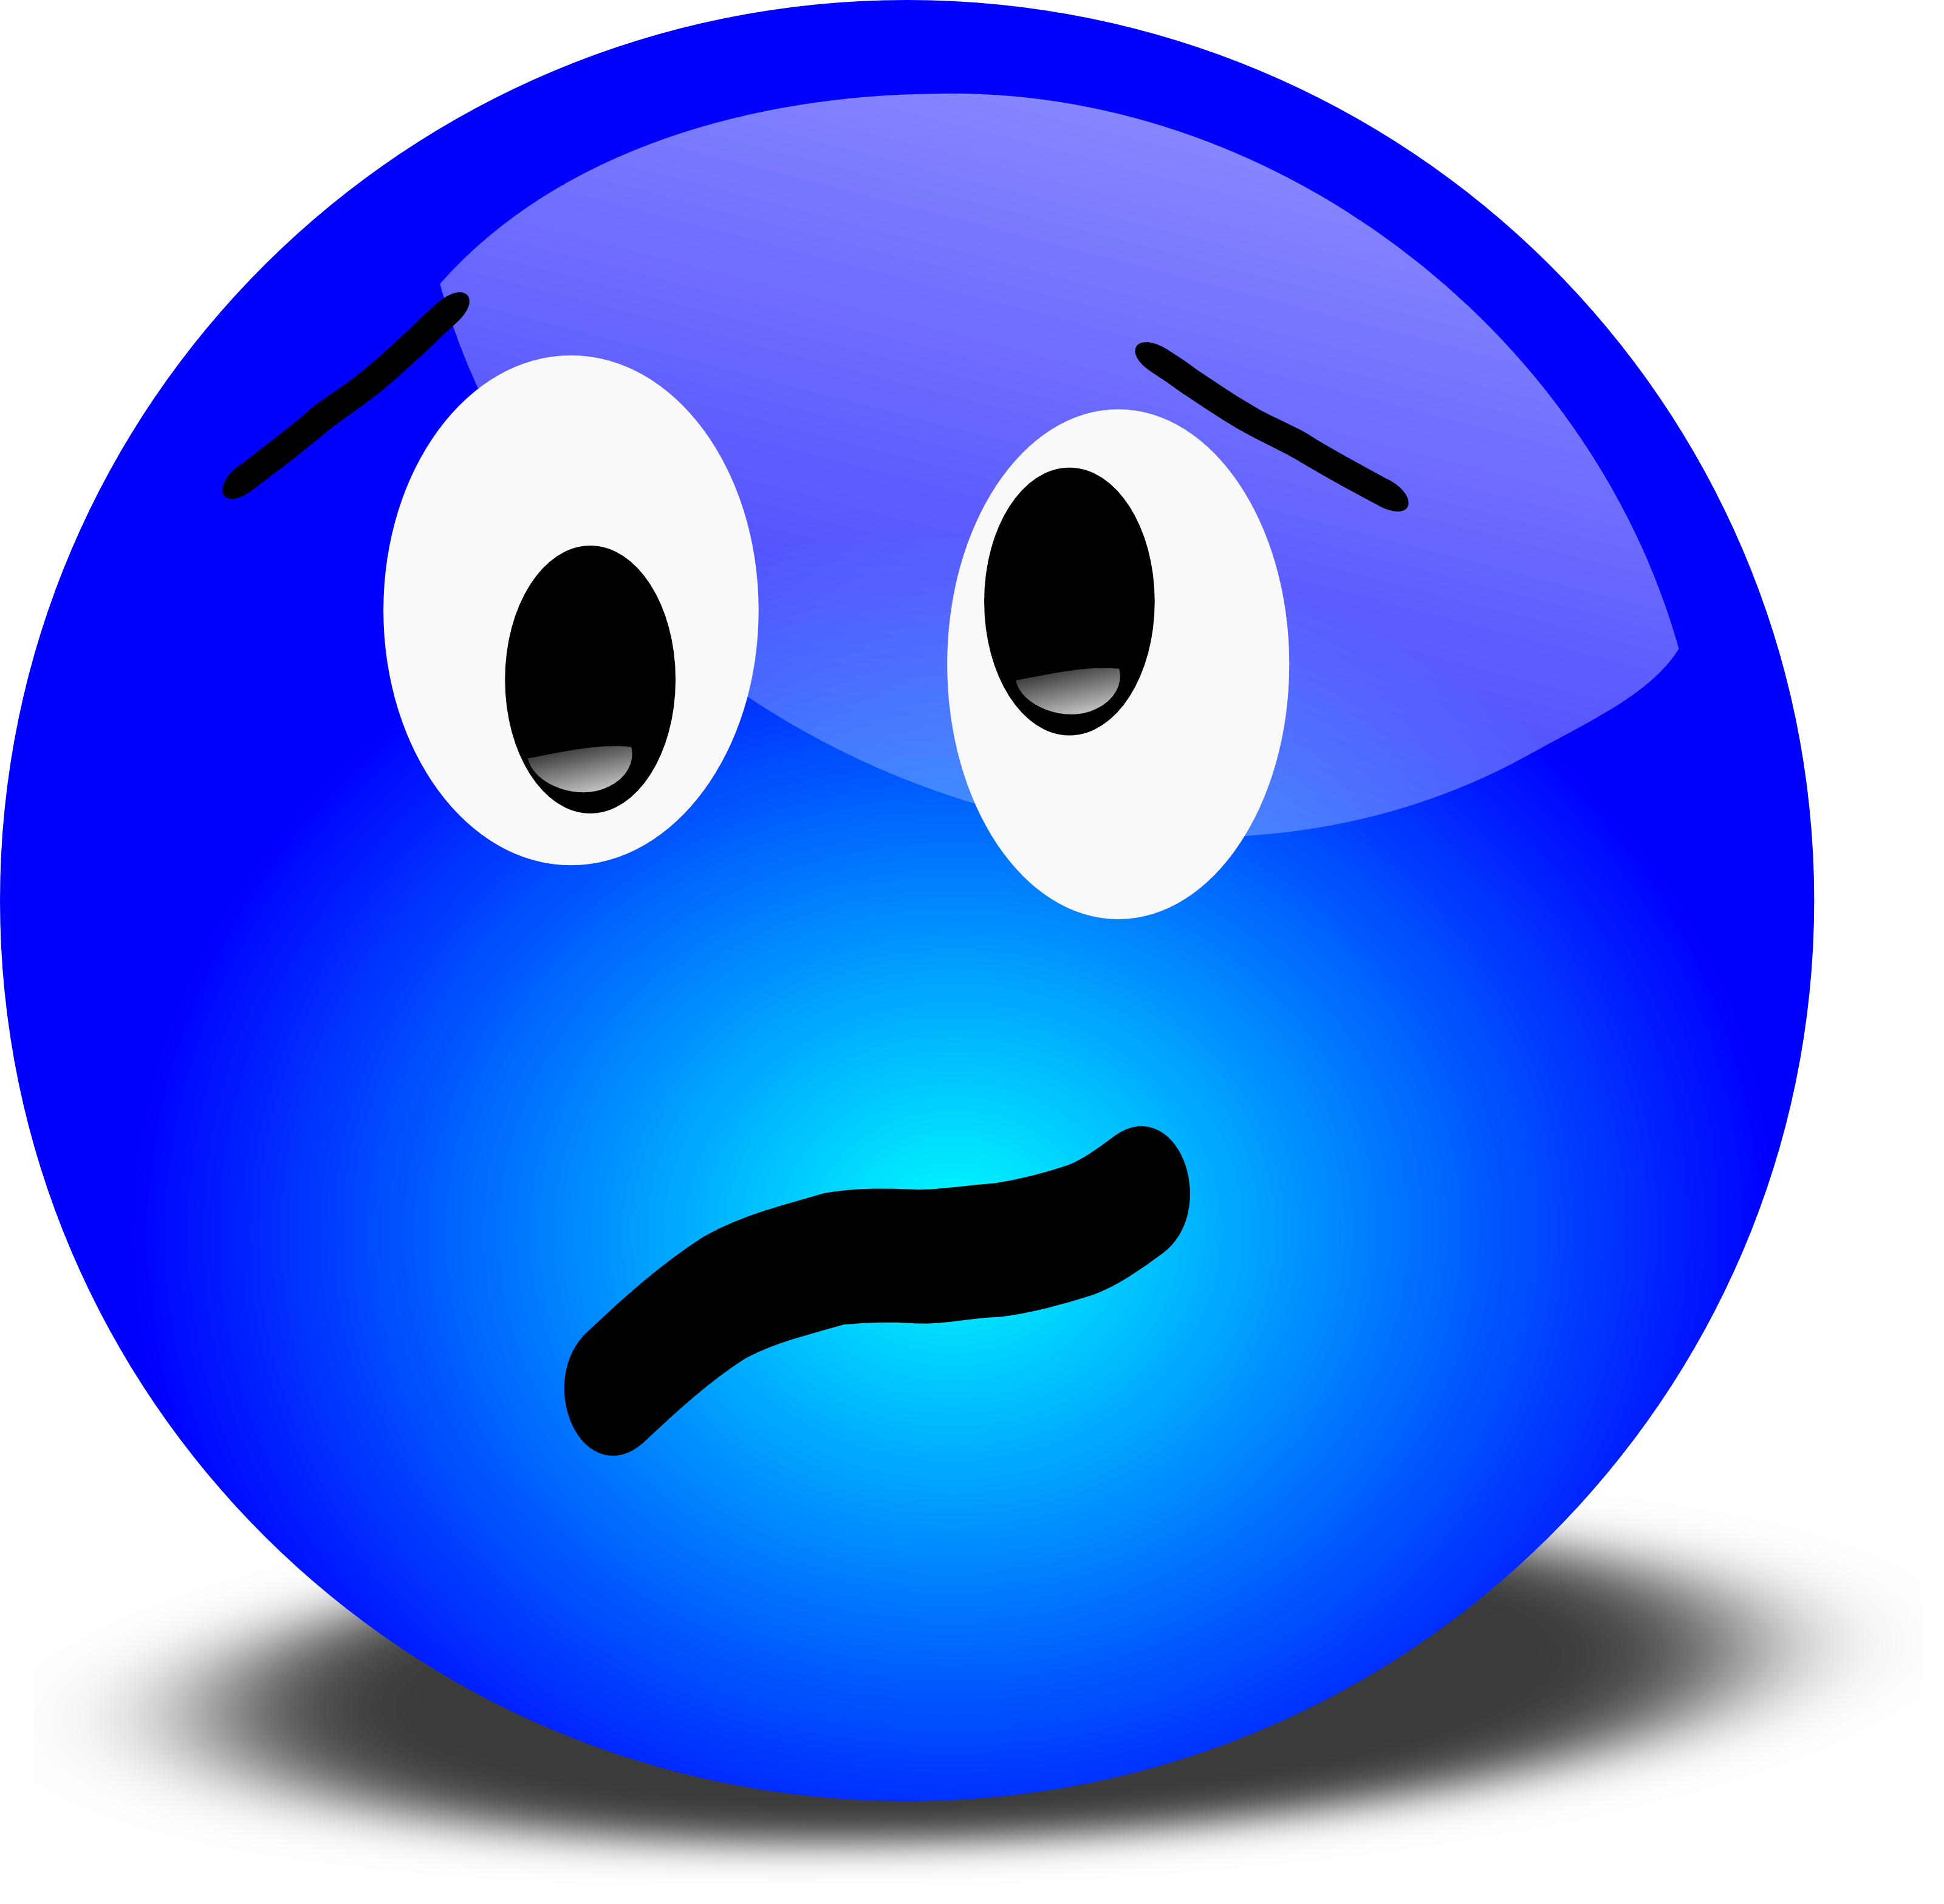 Stressed face clipart clipart freeuse download Free 3D Stressed Smiley Face Clipart Illustration - Free Clipart clipart freeuse download